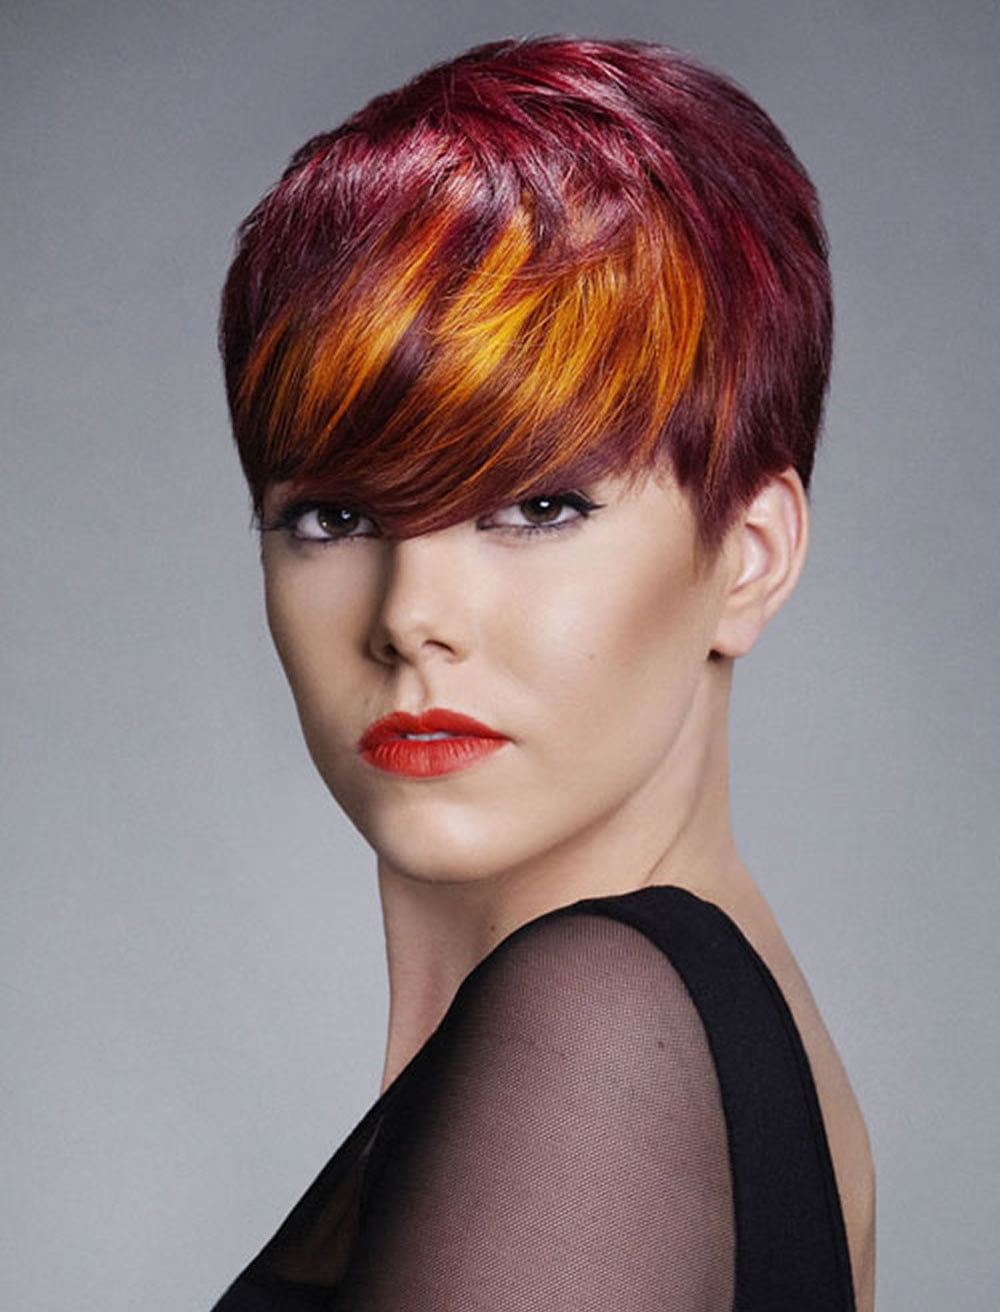 Red Hair Color for Short Hairstyles  27 Cool Haircut Tutorial for 20172018  Page 4  HAIRSTYLES